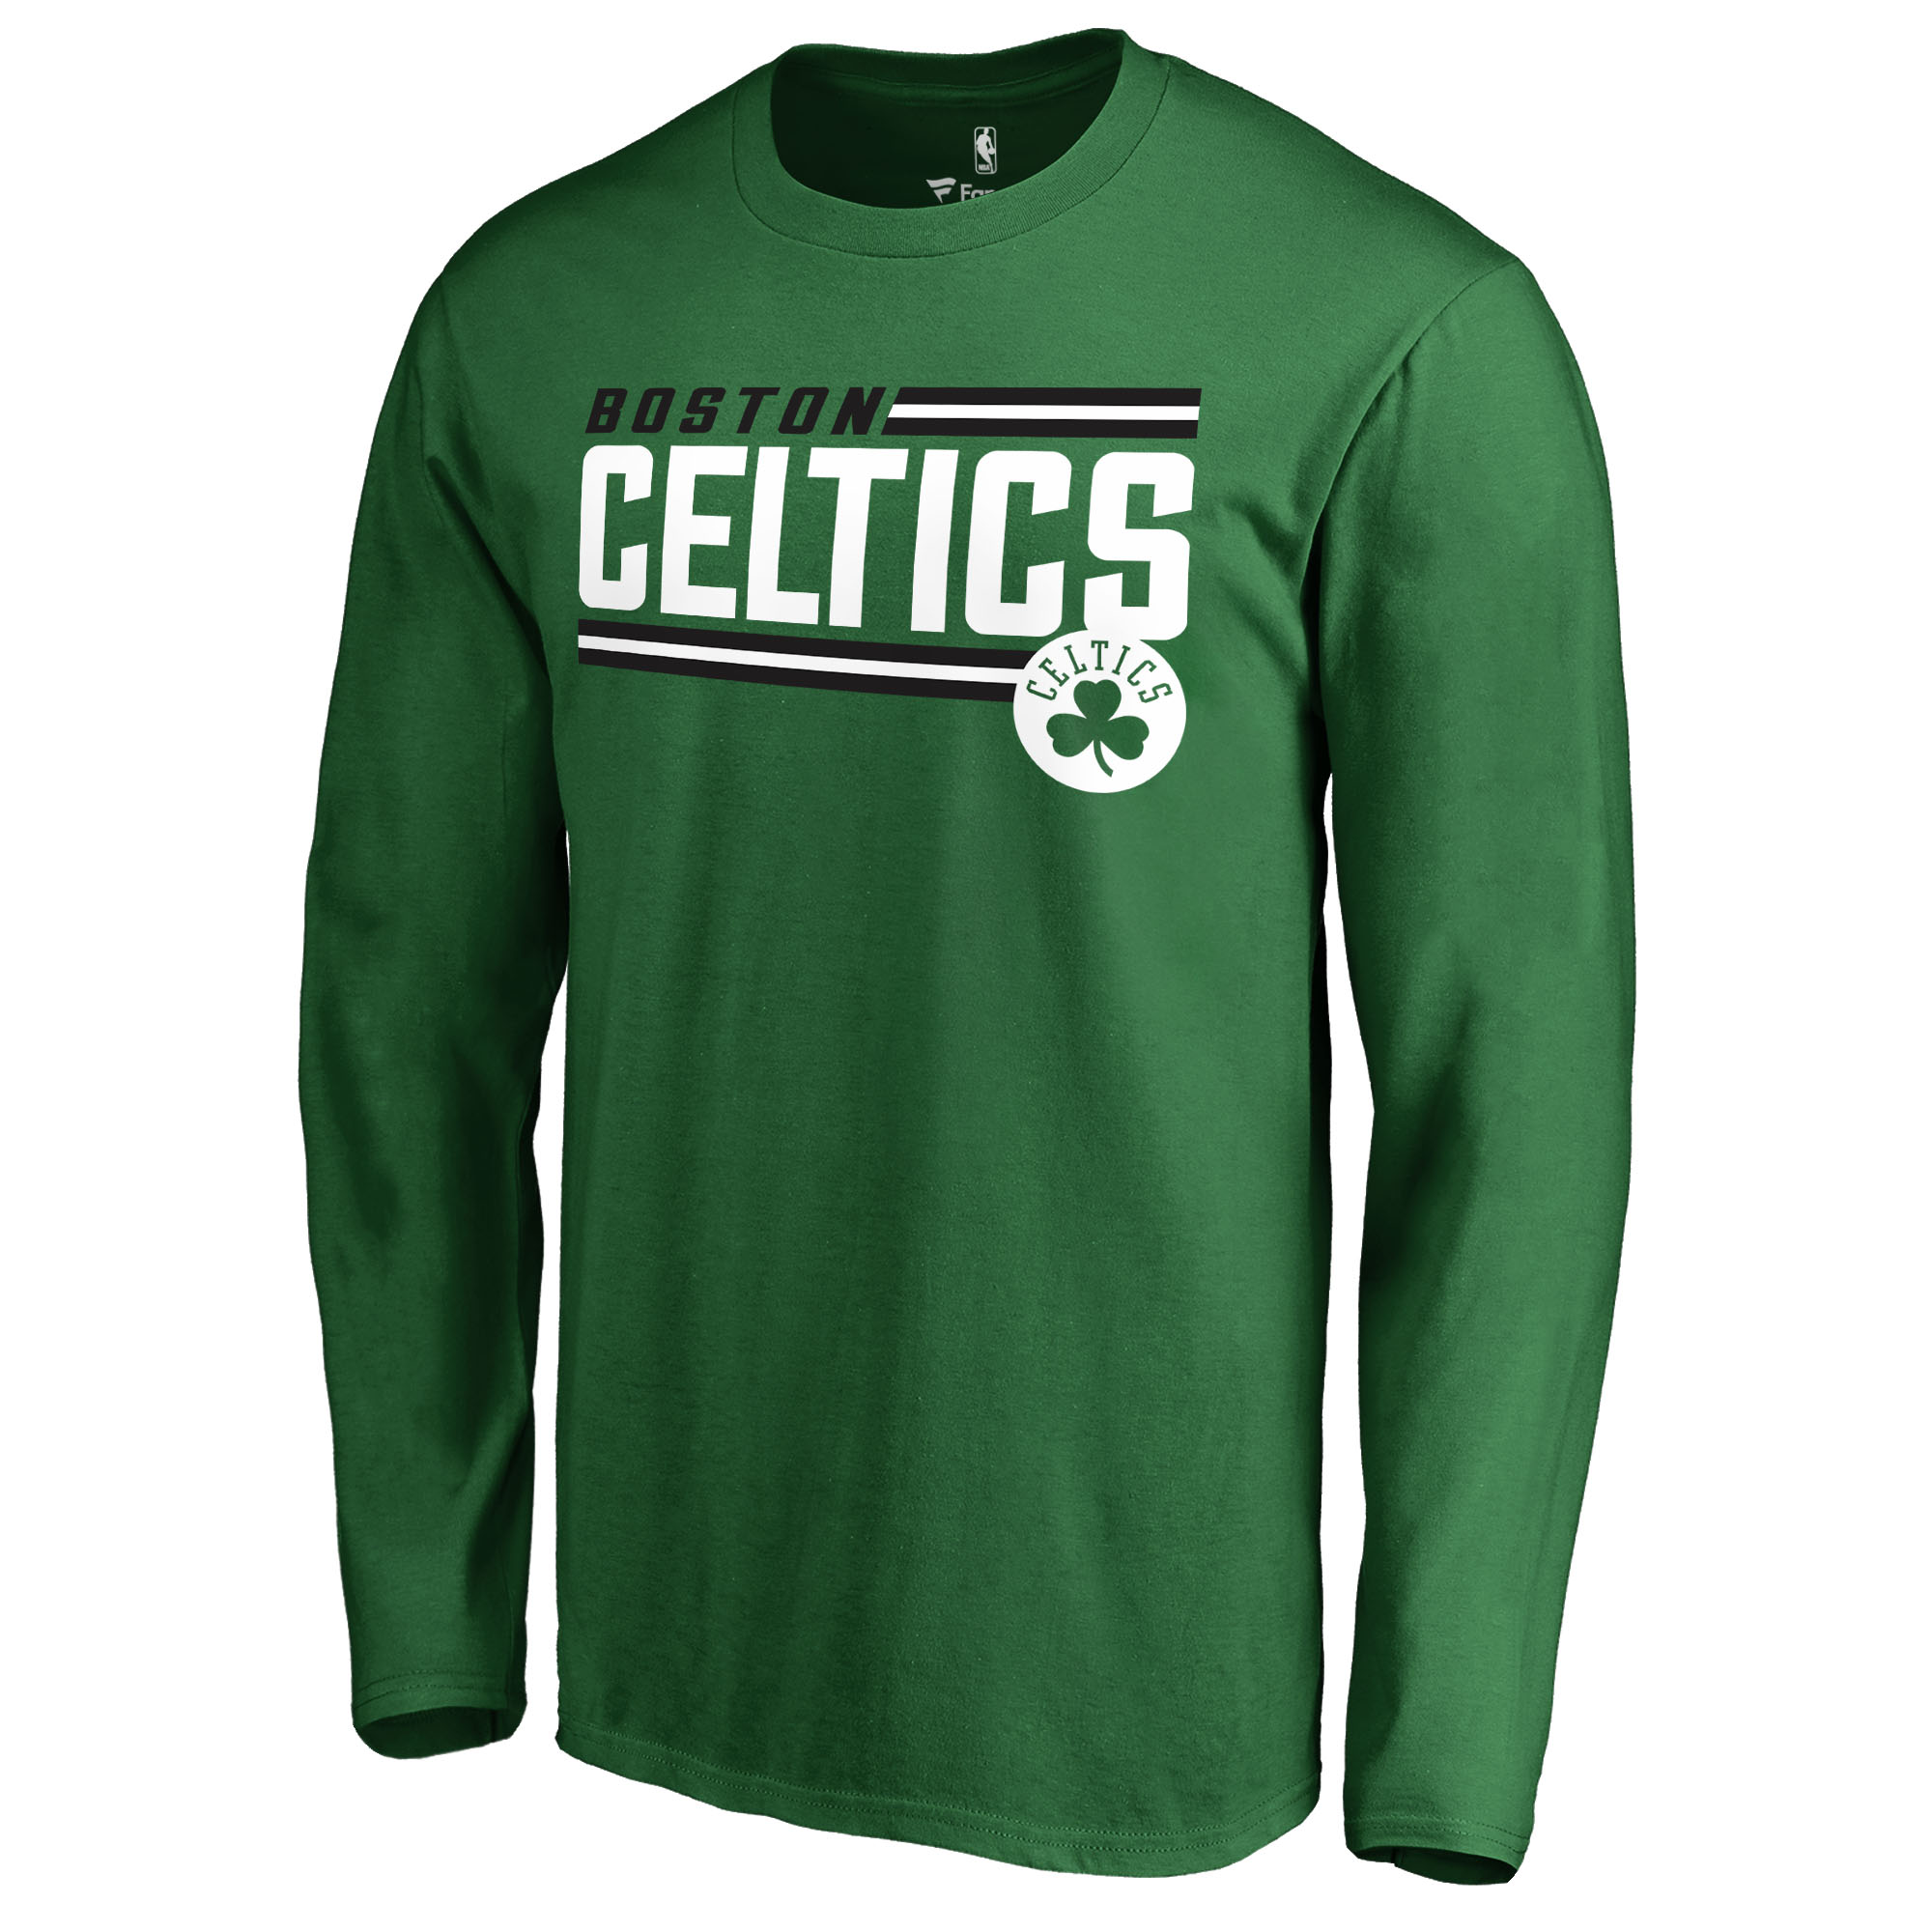 brand new c9f79 aad47 Boston Celtics Team Shop - Walmart.com